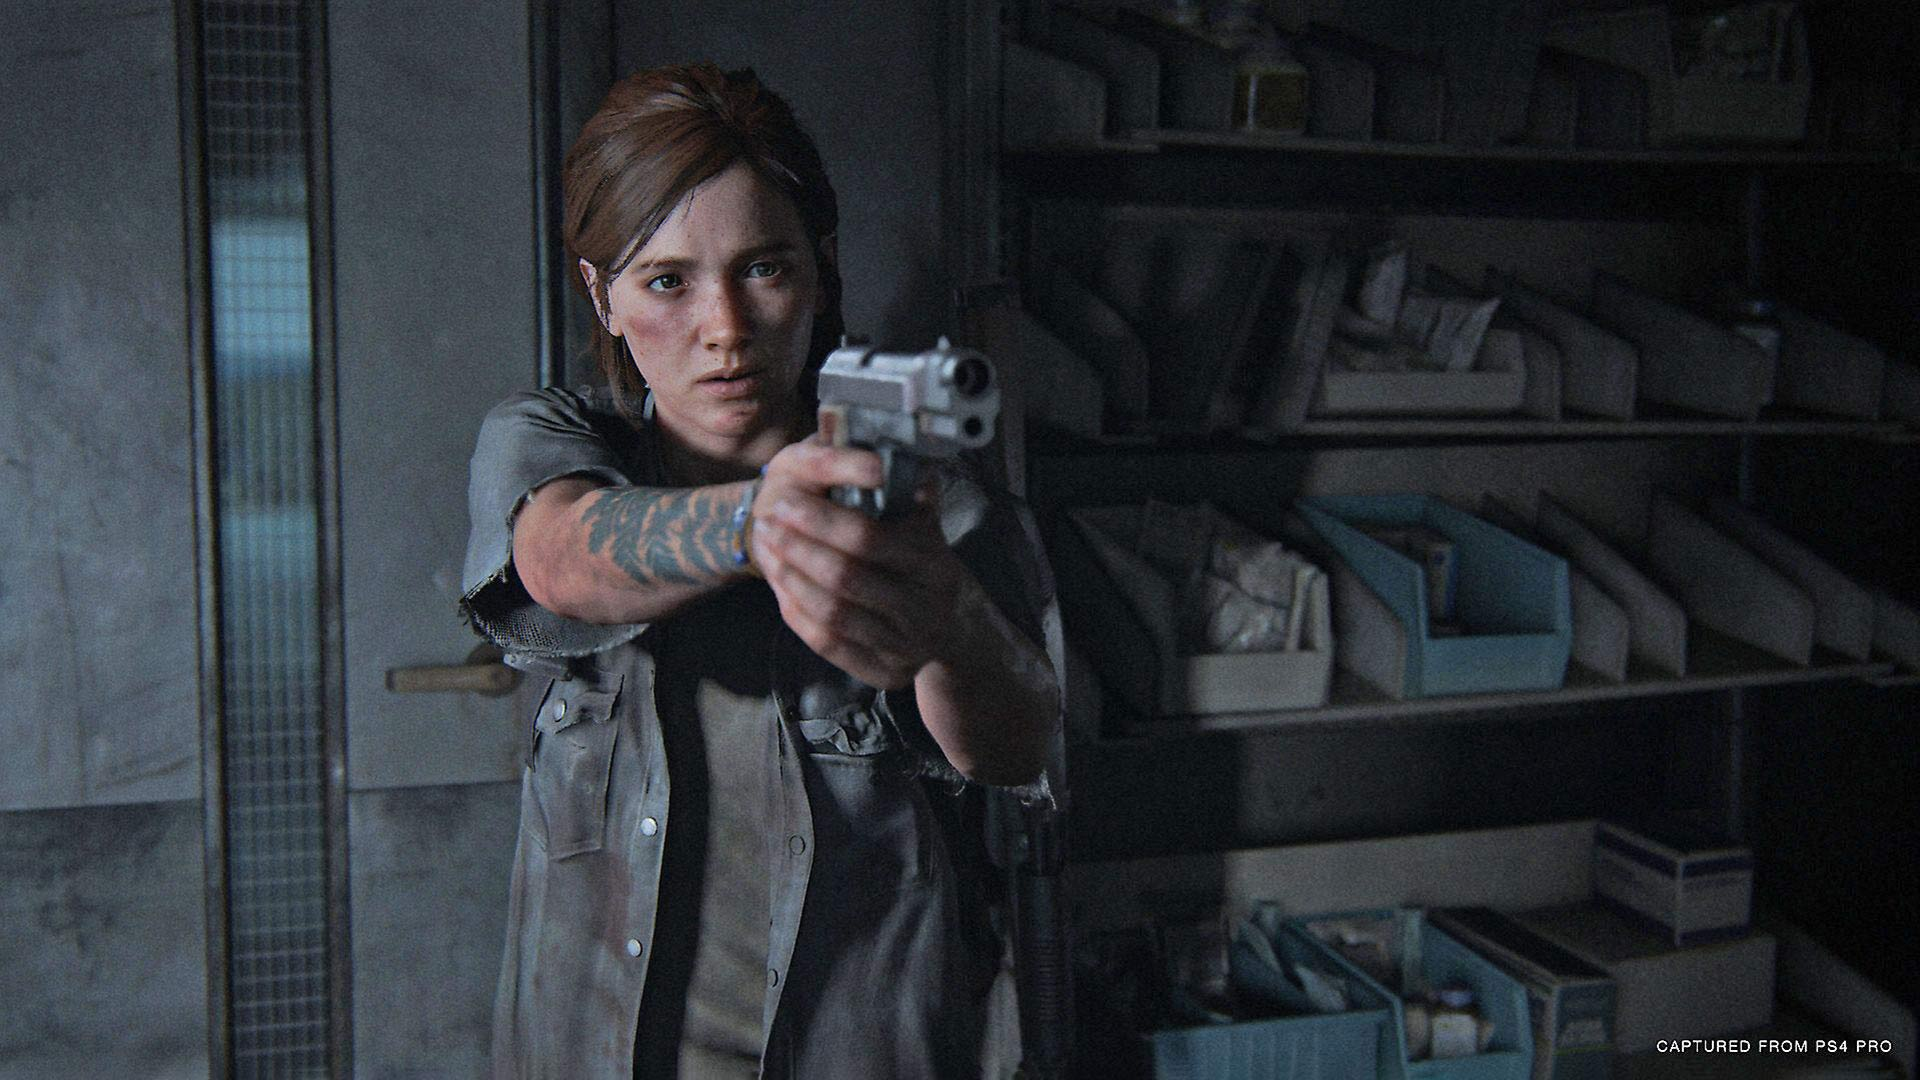 The Last of Us: Part 2 has set an extremely high bar for photorealistic, realtime 3D graphics. Image: Sony/Naughty Dog.